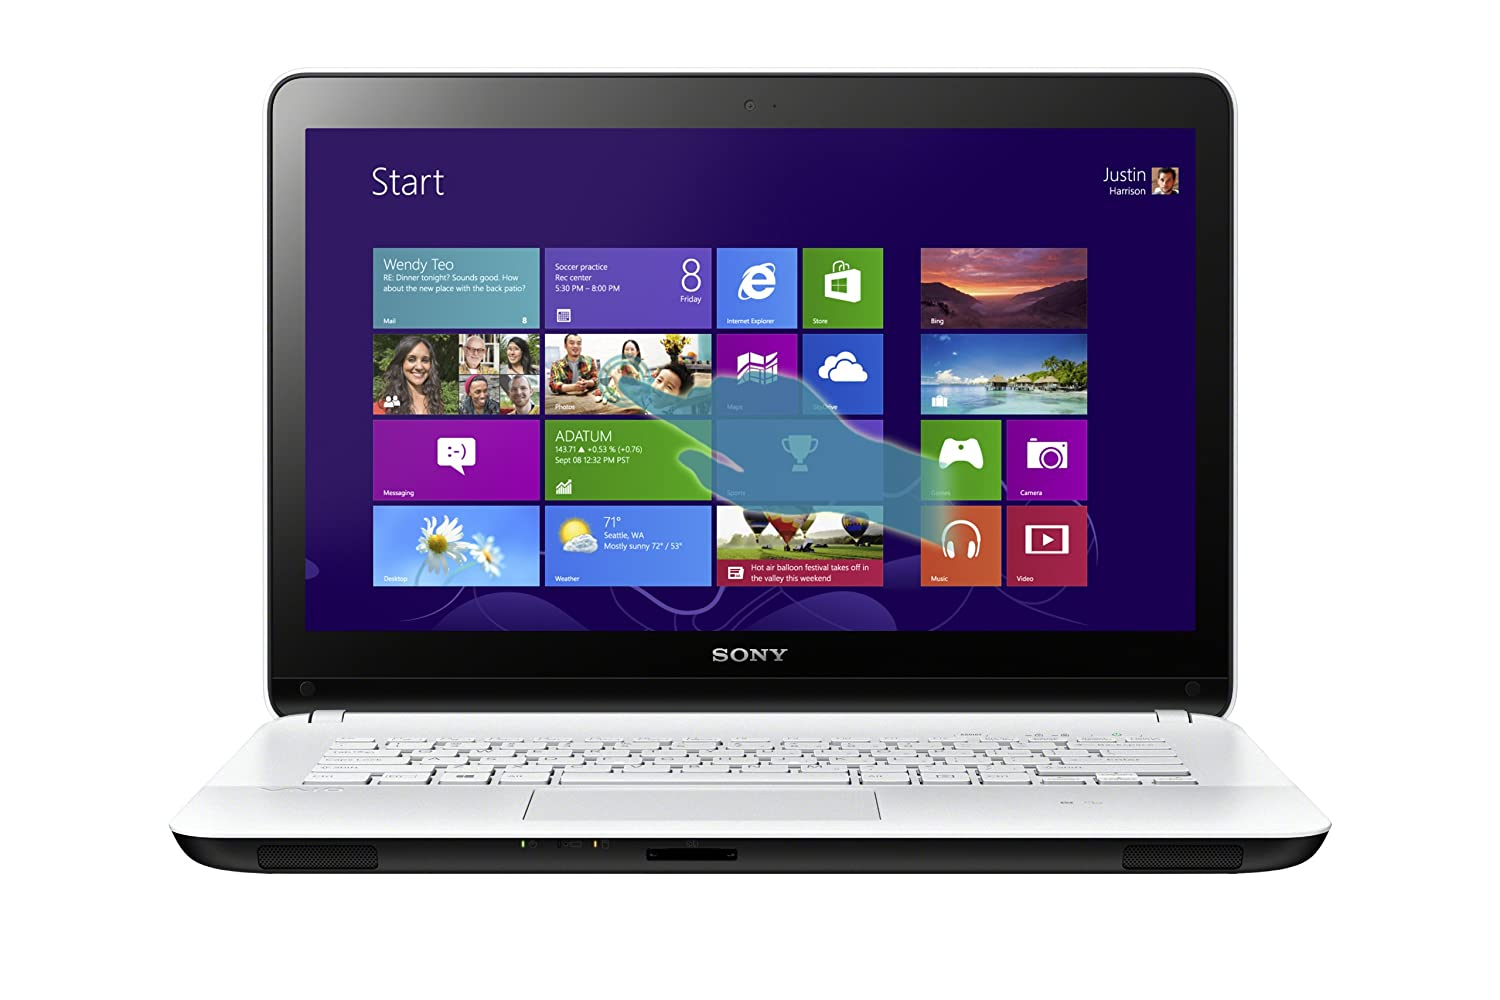 Sony VAIO SVF1432ACXW 14-Inch Touchscreen i7 Laptop